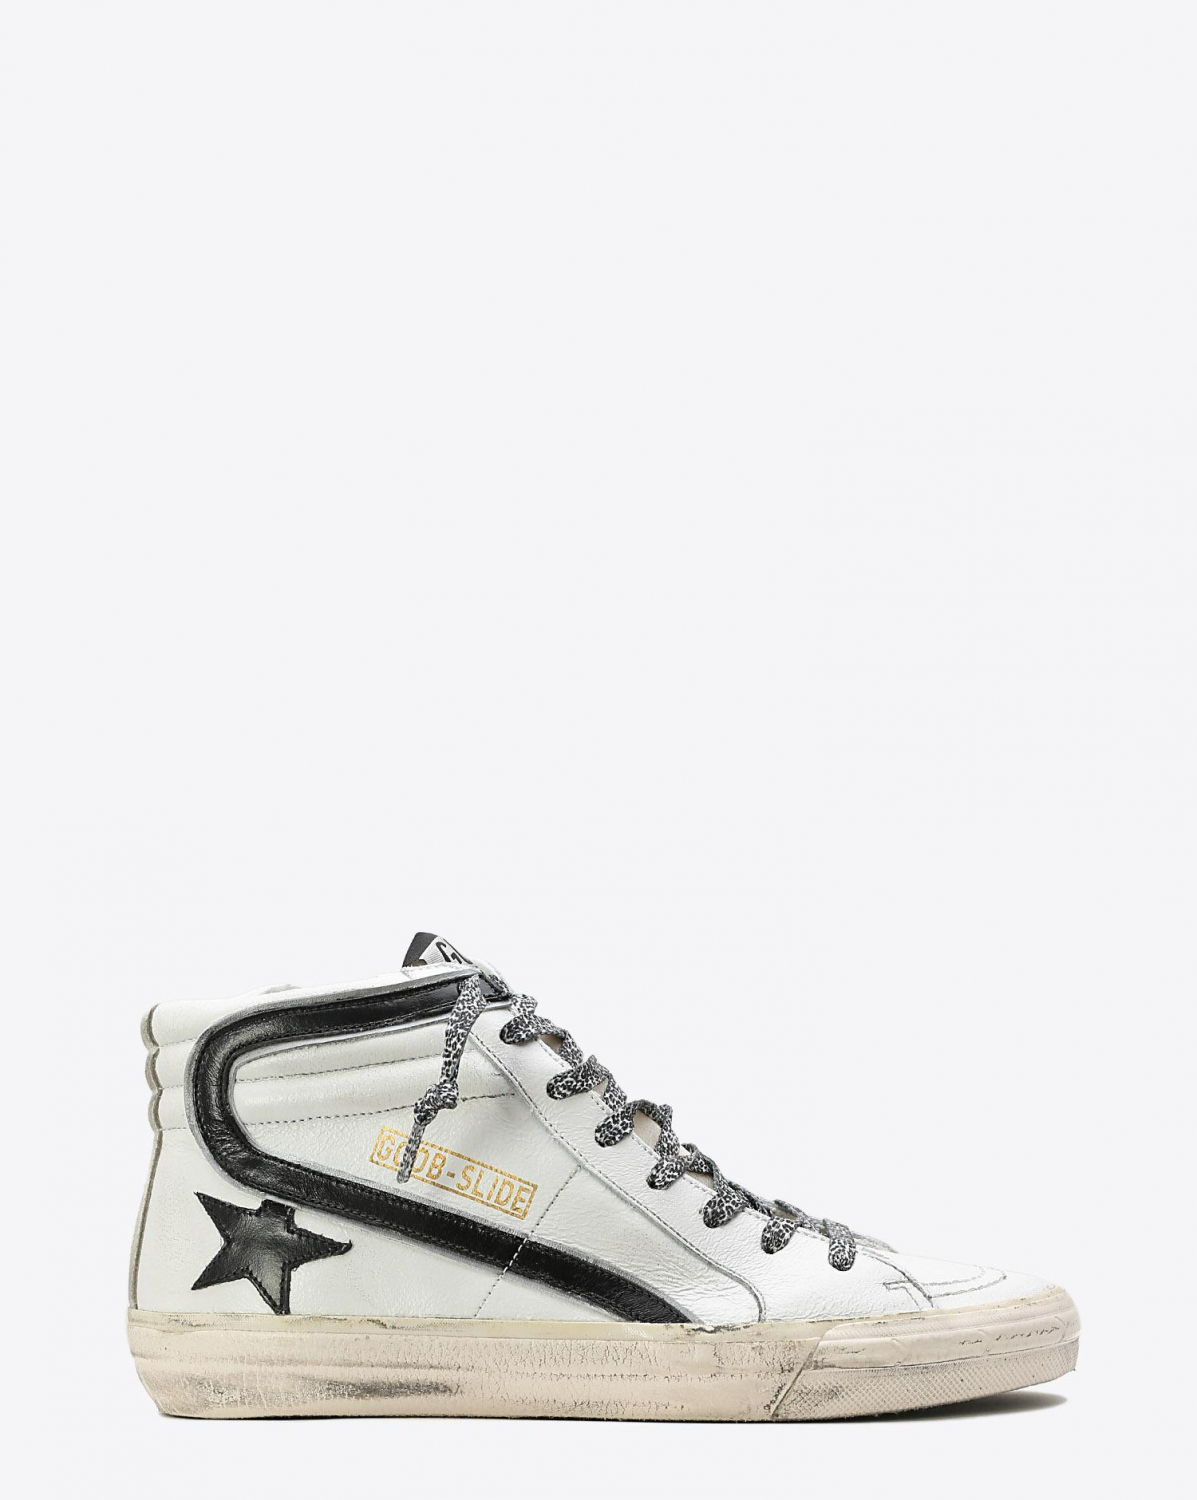 Golden Goose Woman Pré-Collection Sneakers Slide White Leather-Leopard Lace